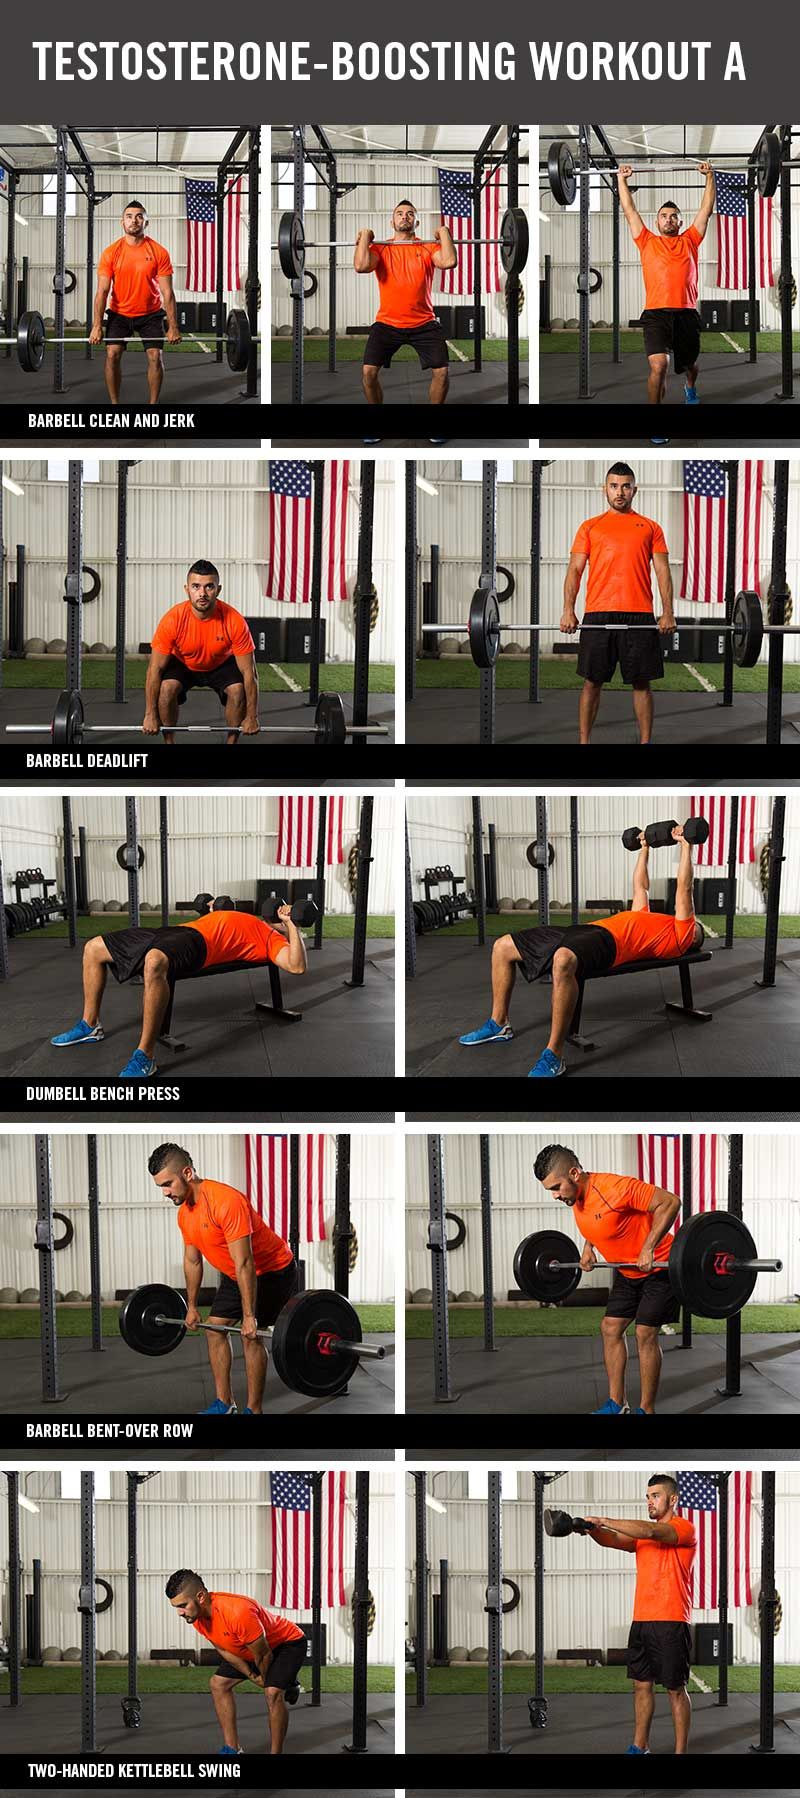 10 Testosterone boosting workout and some great arm workouts for strength training!